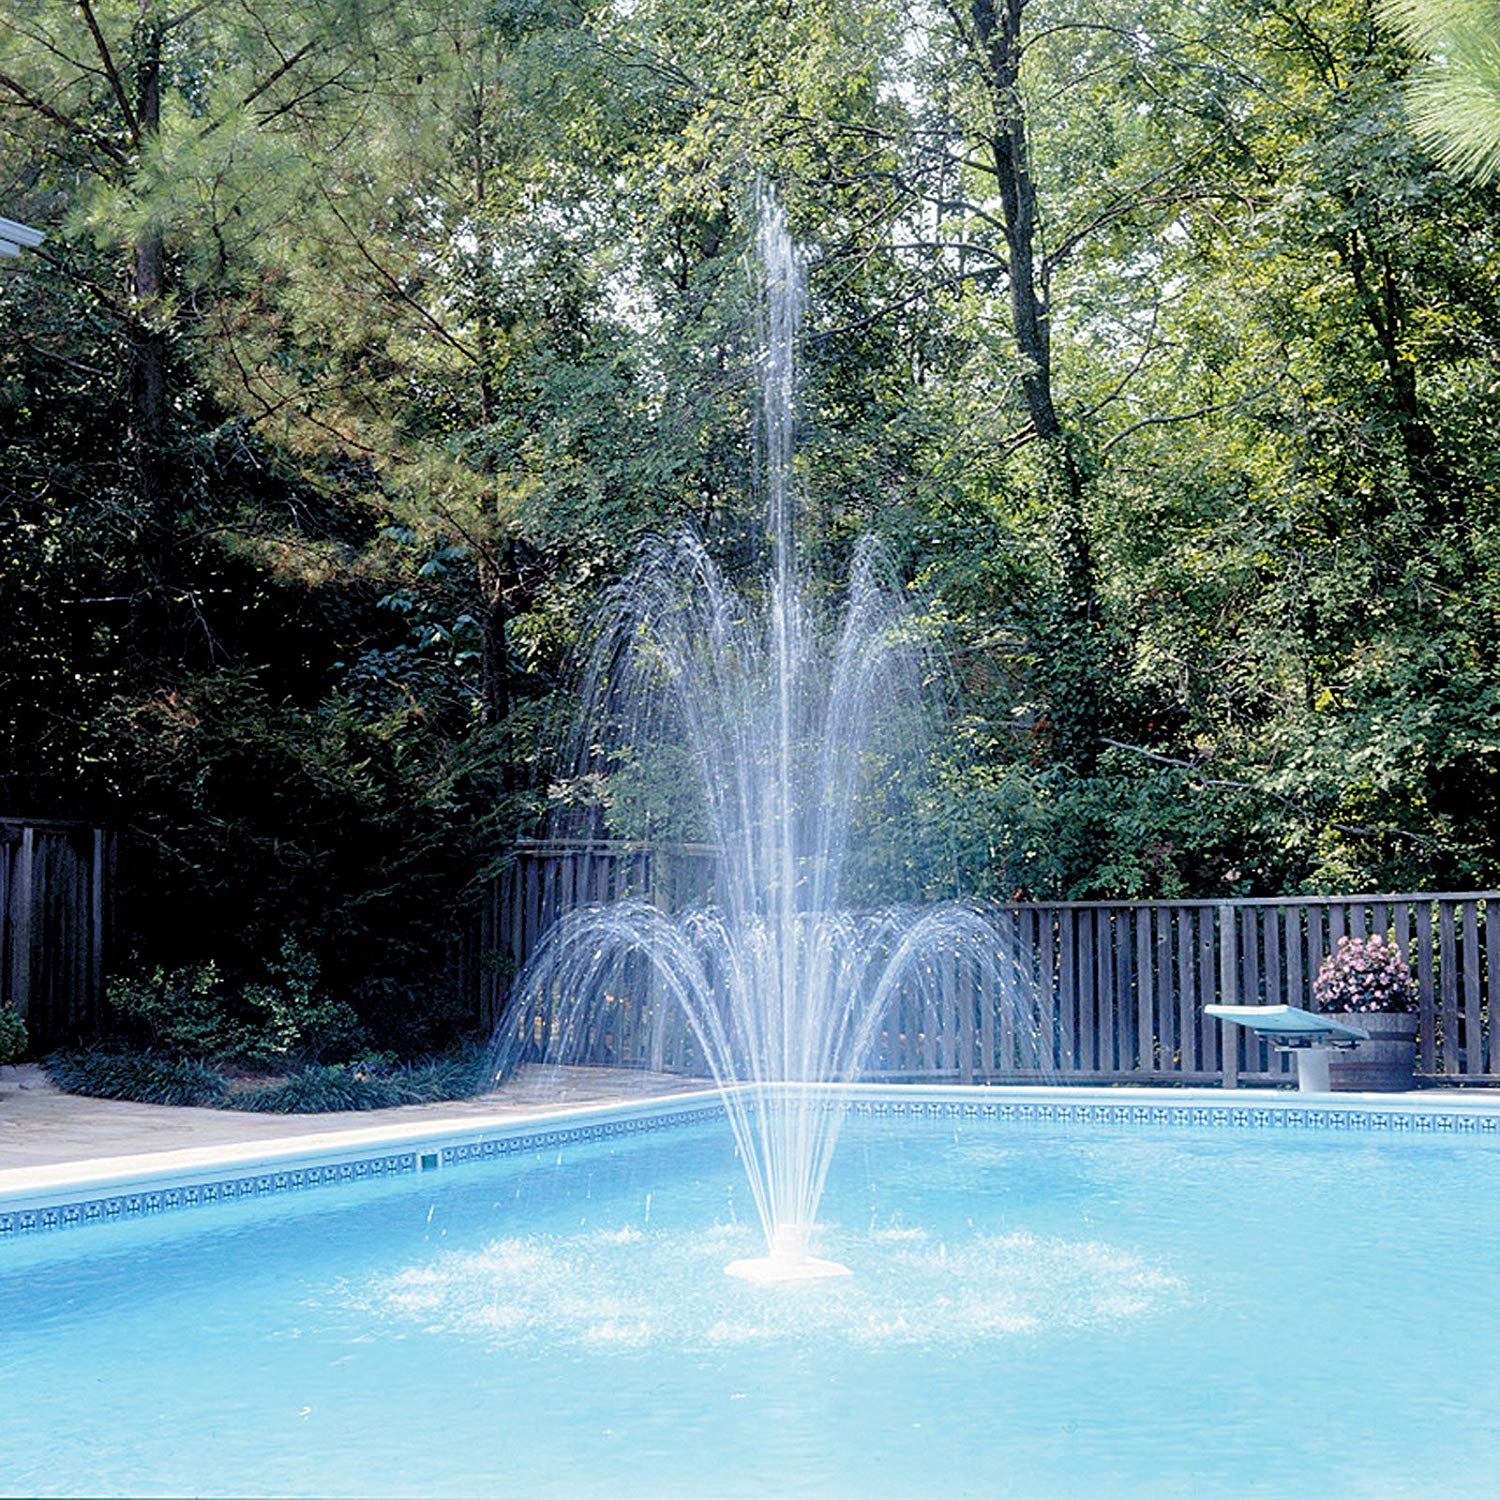 best Pool Deals coupon: $5 off entire store when you spend $50+